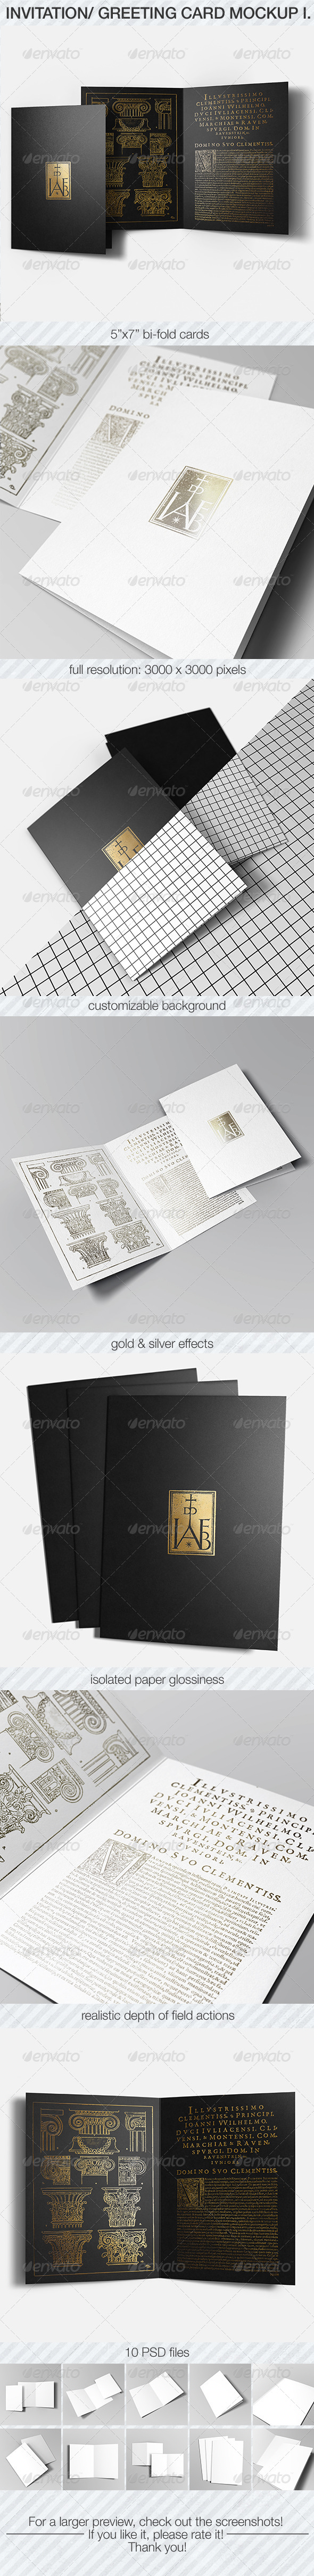 Invitation & Greeting Card Mockup Pack I. - Miscellaneous Print